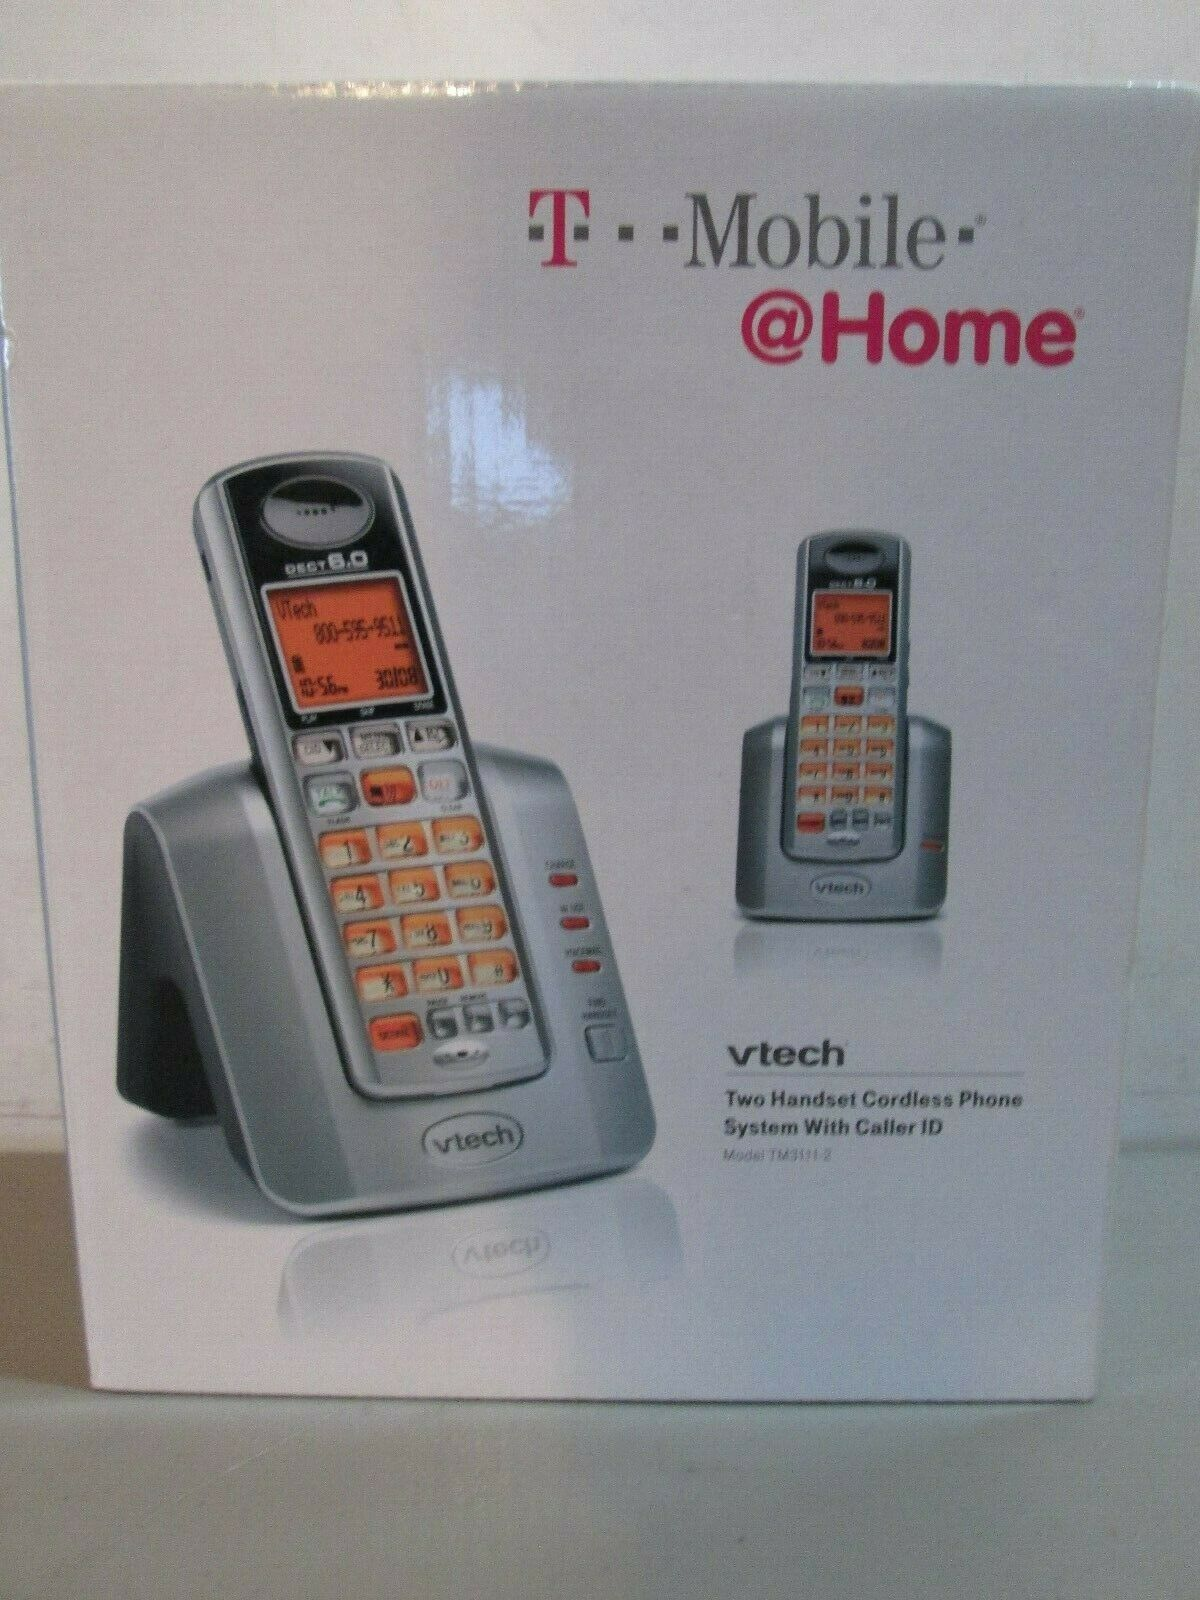 Vtech 6.0 DS3111-2 Cordless Phone System Lot of 2// 4 Phones Total DS3111-2